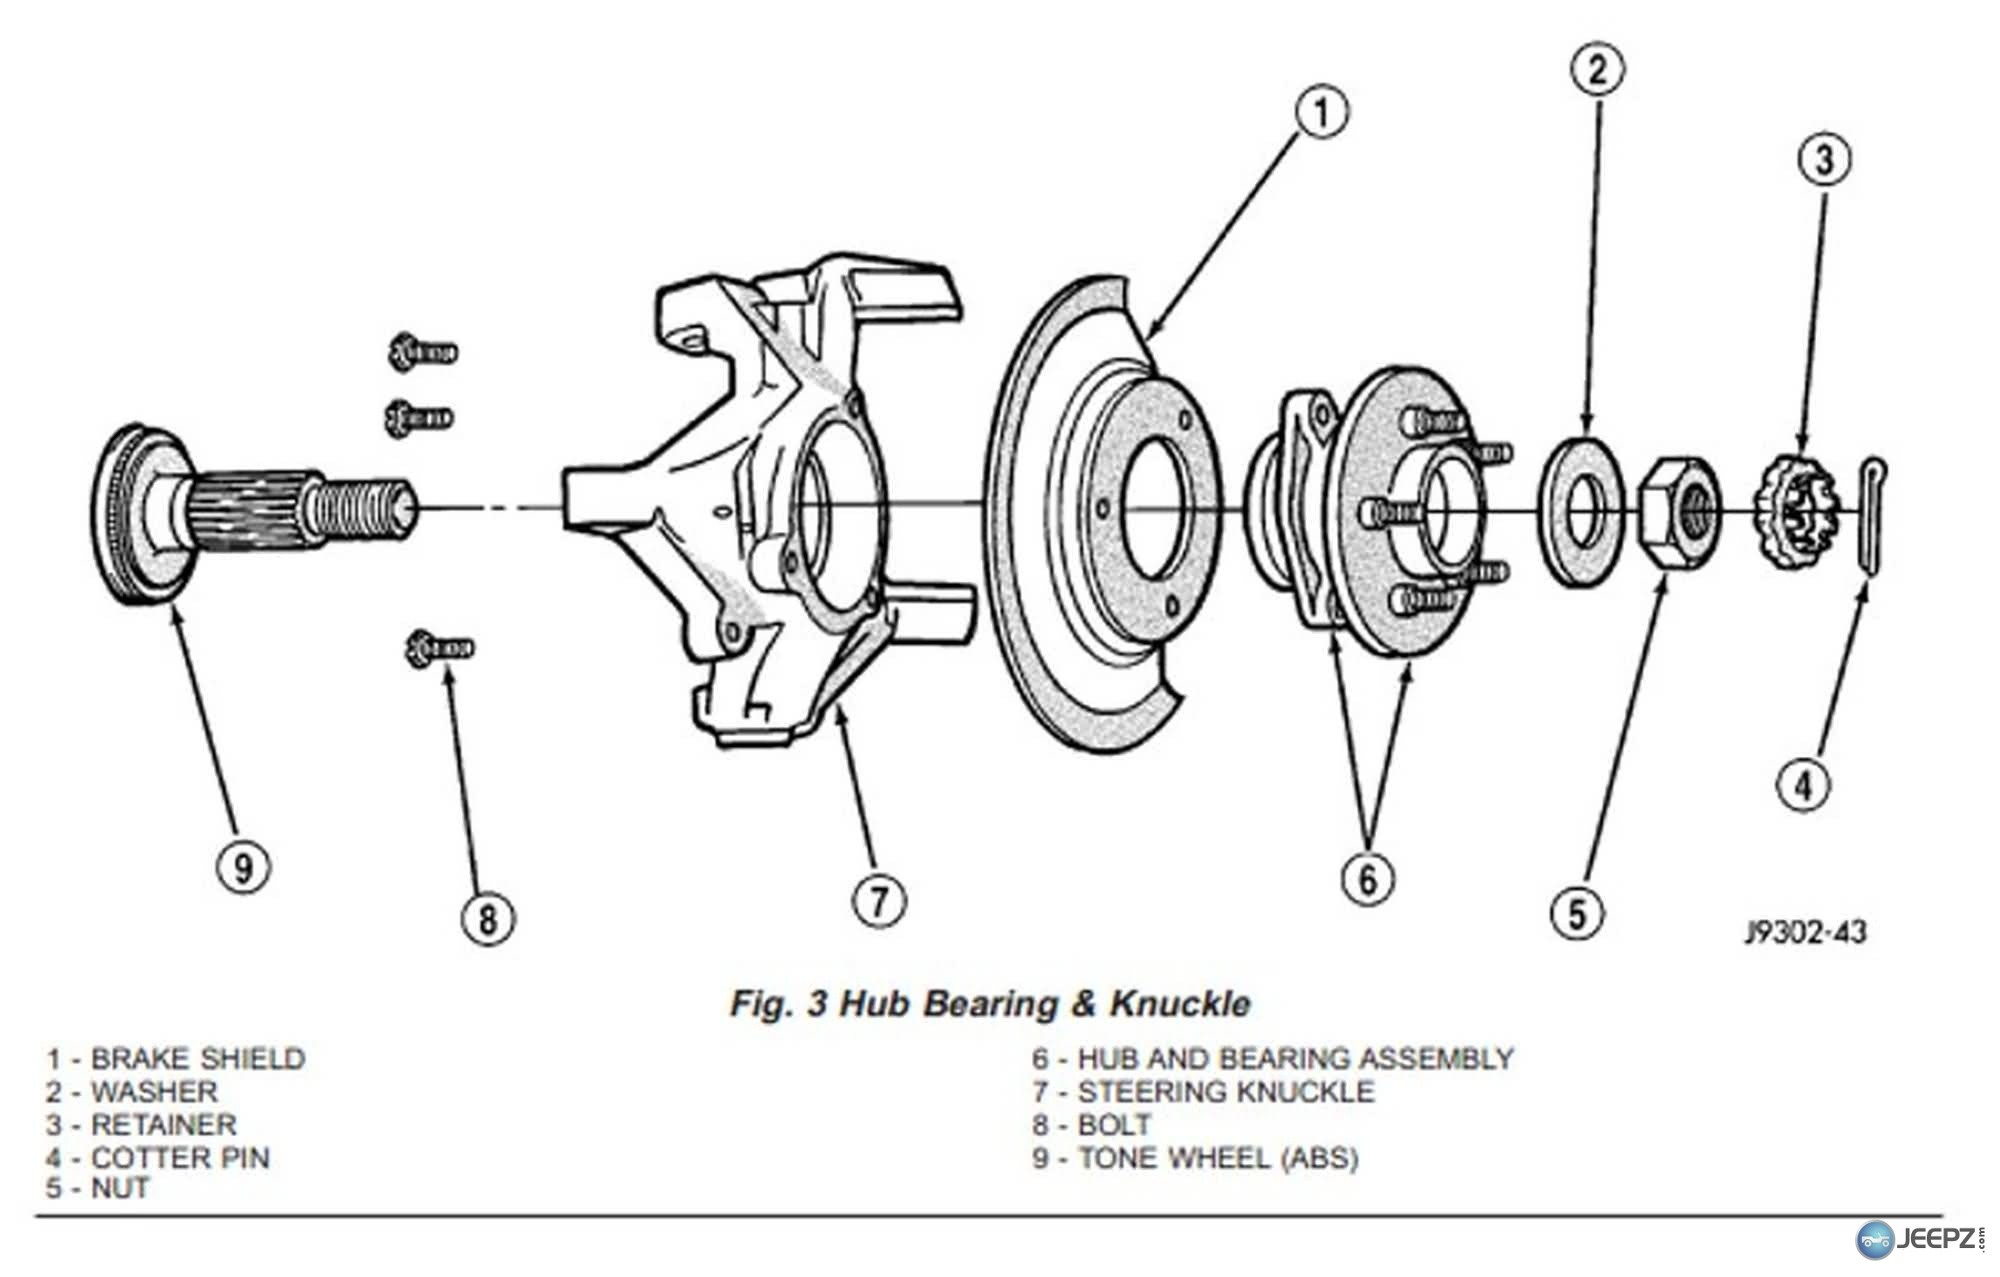 wheel bearing assembly diagram stub axle conversion  u2013 my